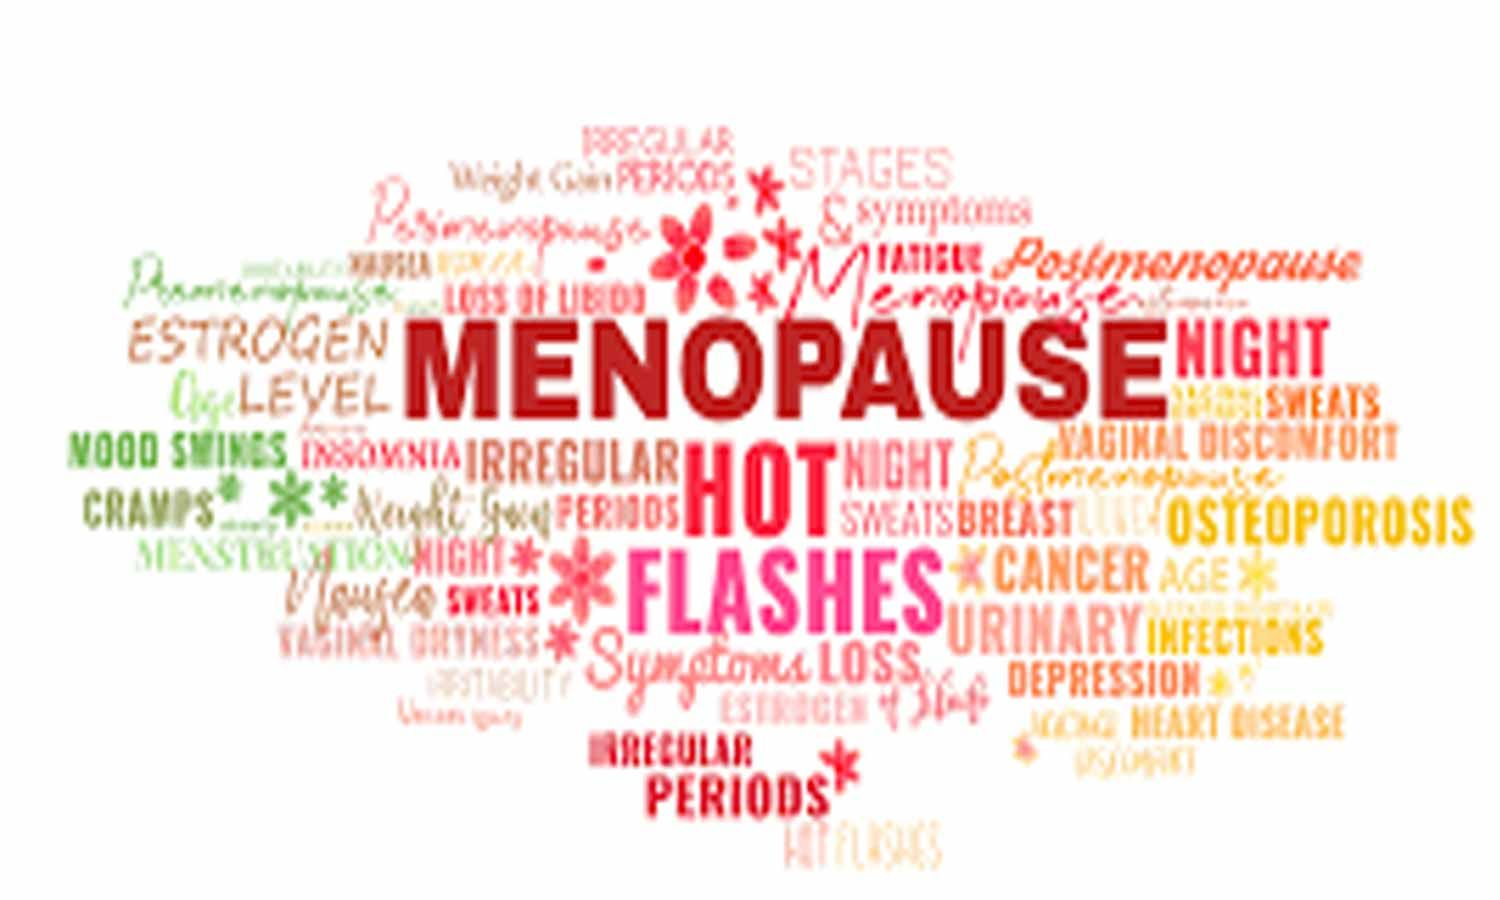 Menopause increases risk of metabolic syndrome, finds study